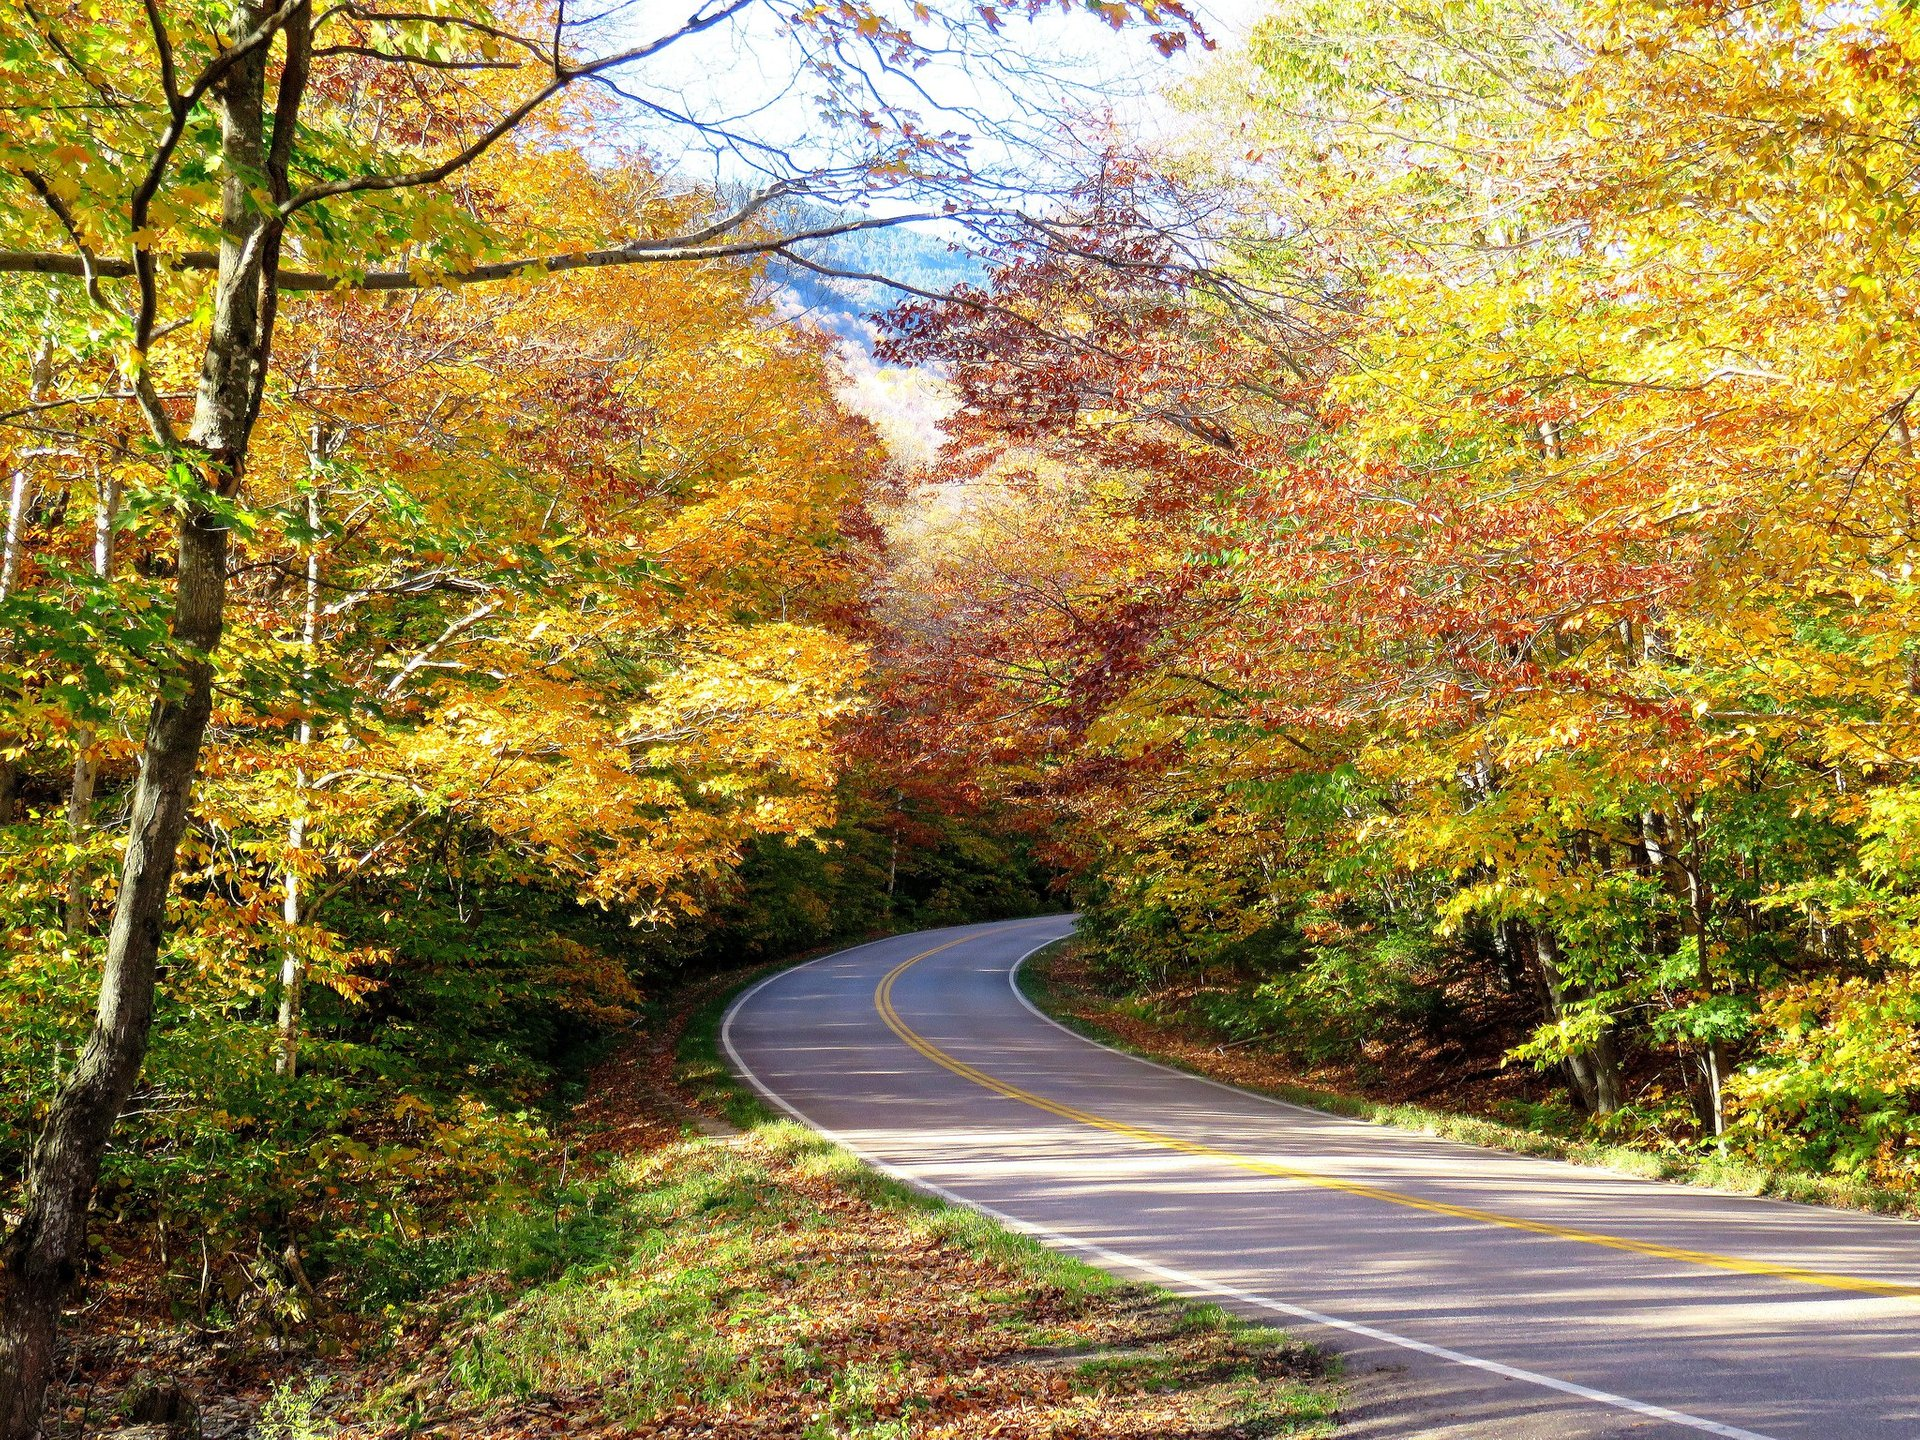 Driving in Smugglers' Notch, Vermont 2020